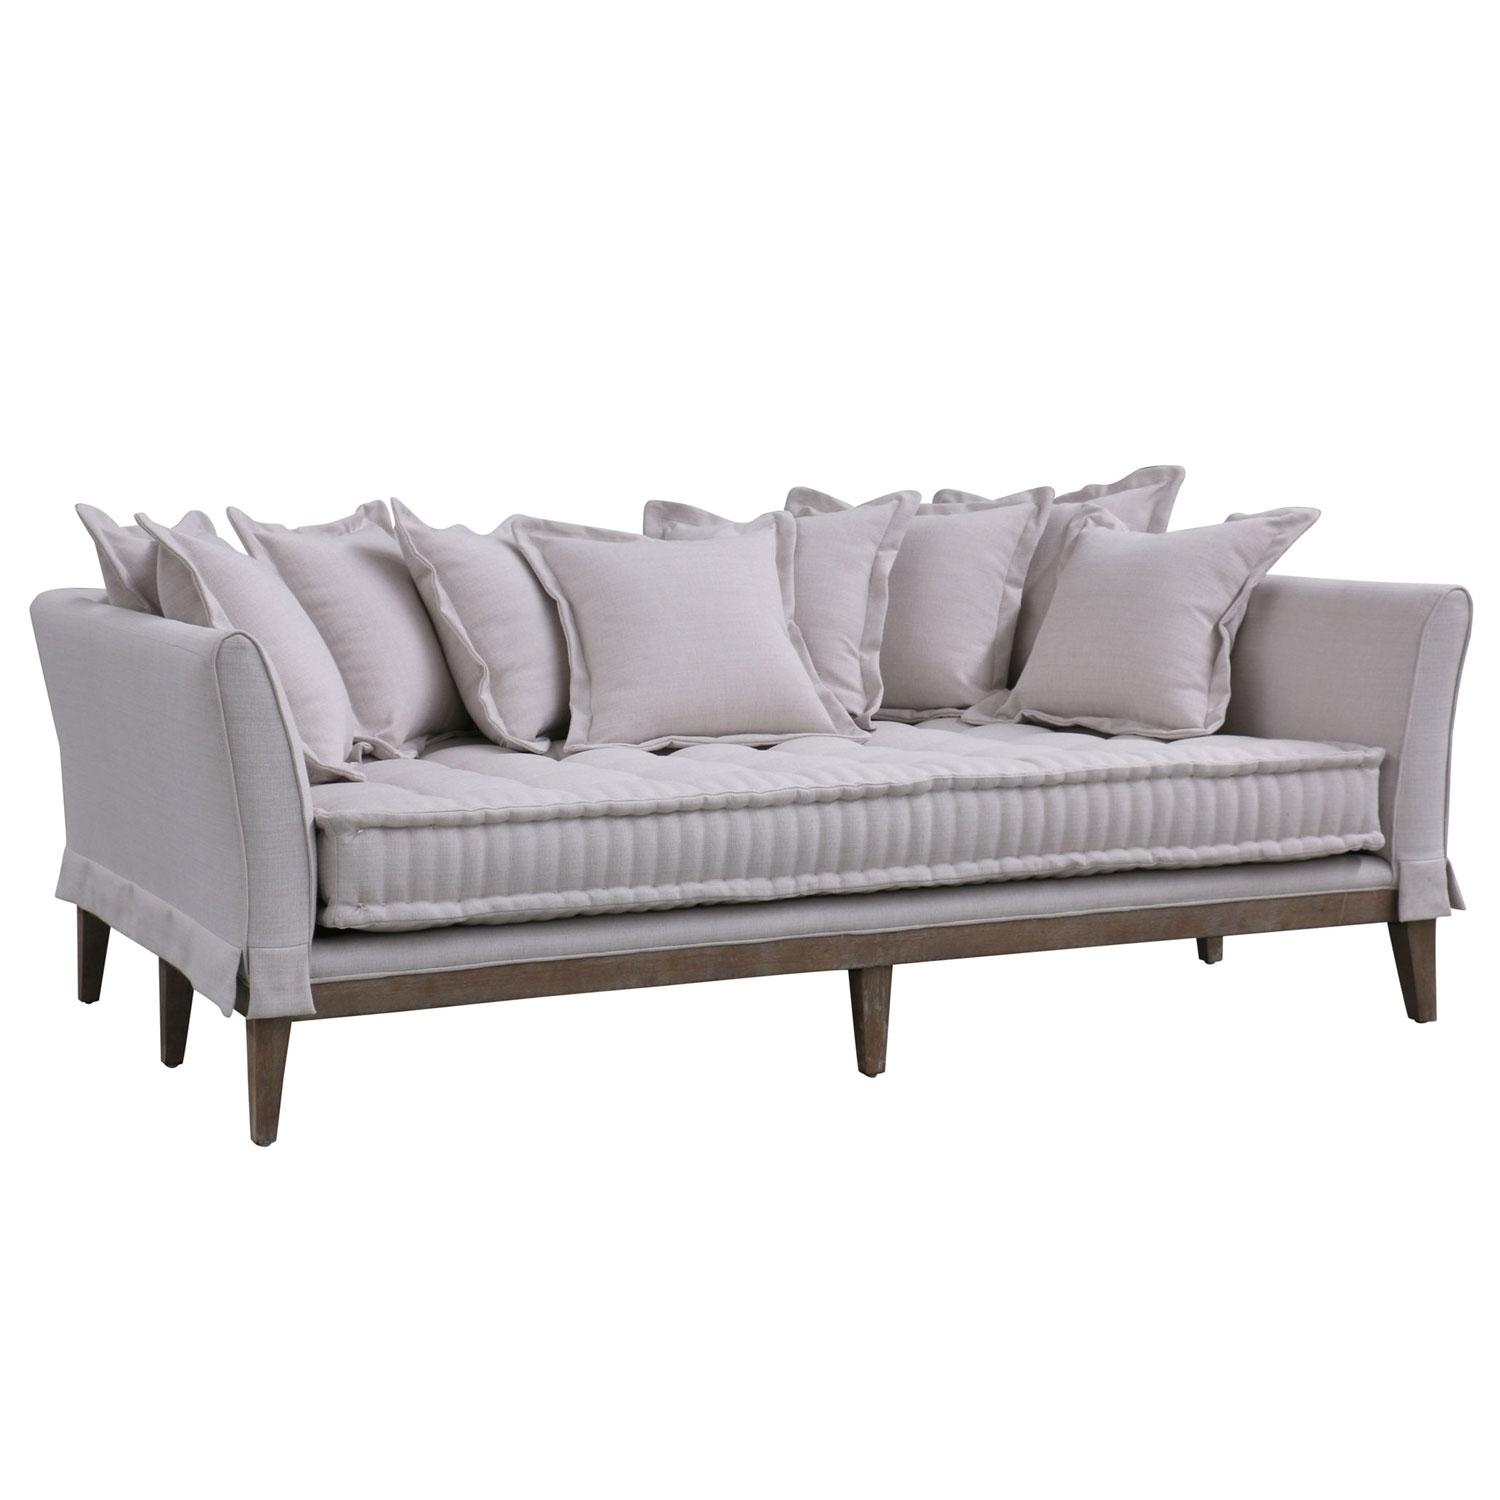 20 Top Sofa Day Beds Sofa Ideas